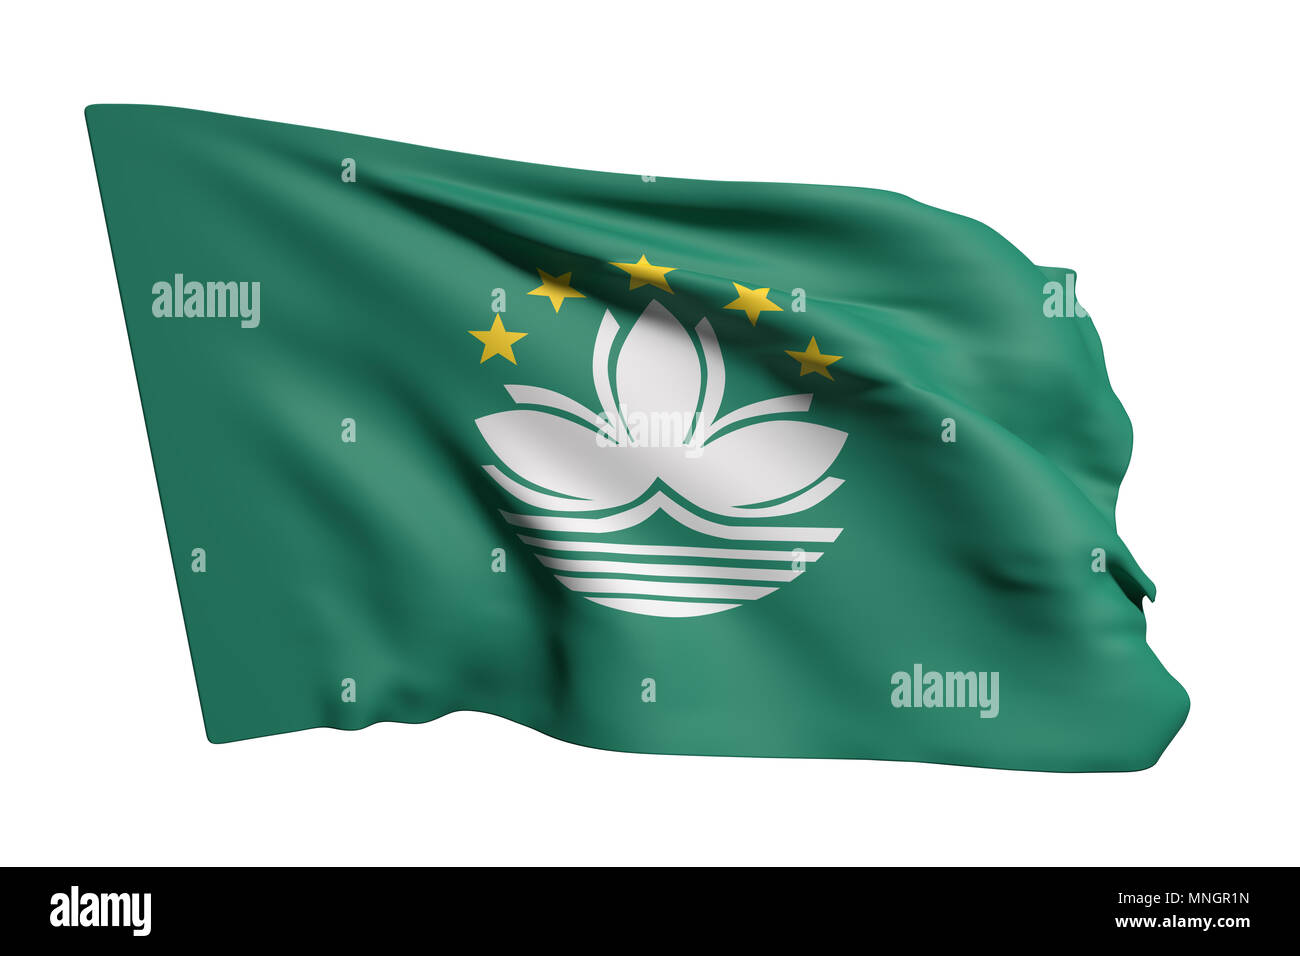 3d rendering of Macau flag waving on white background - Stock Image